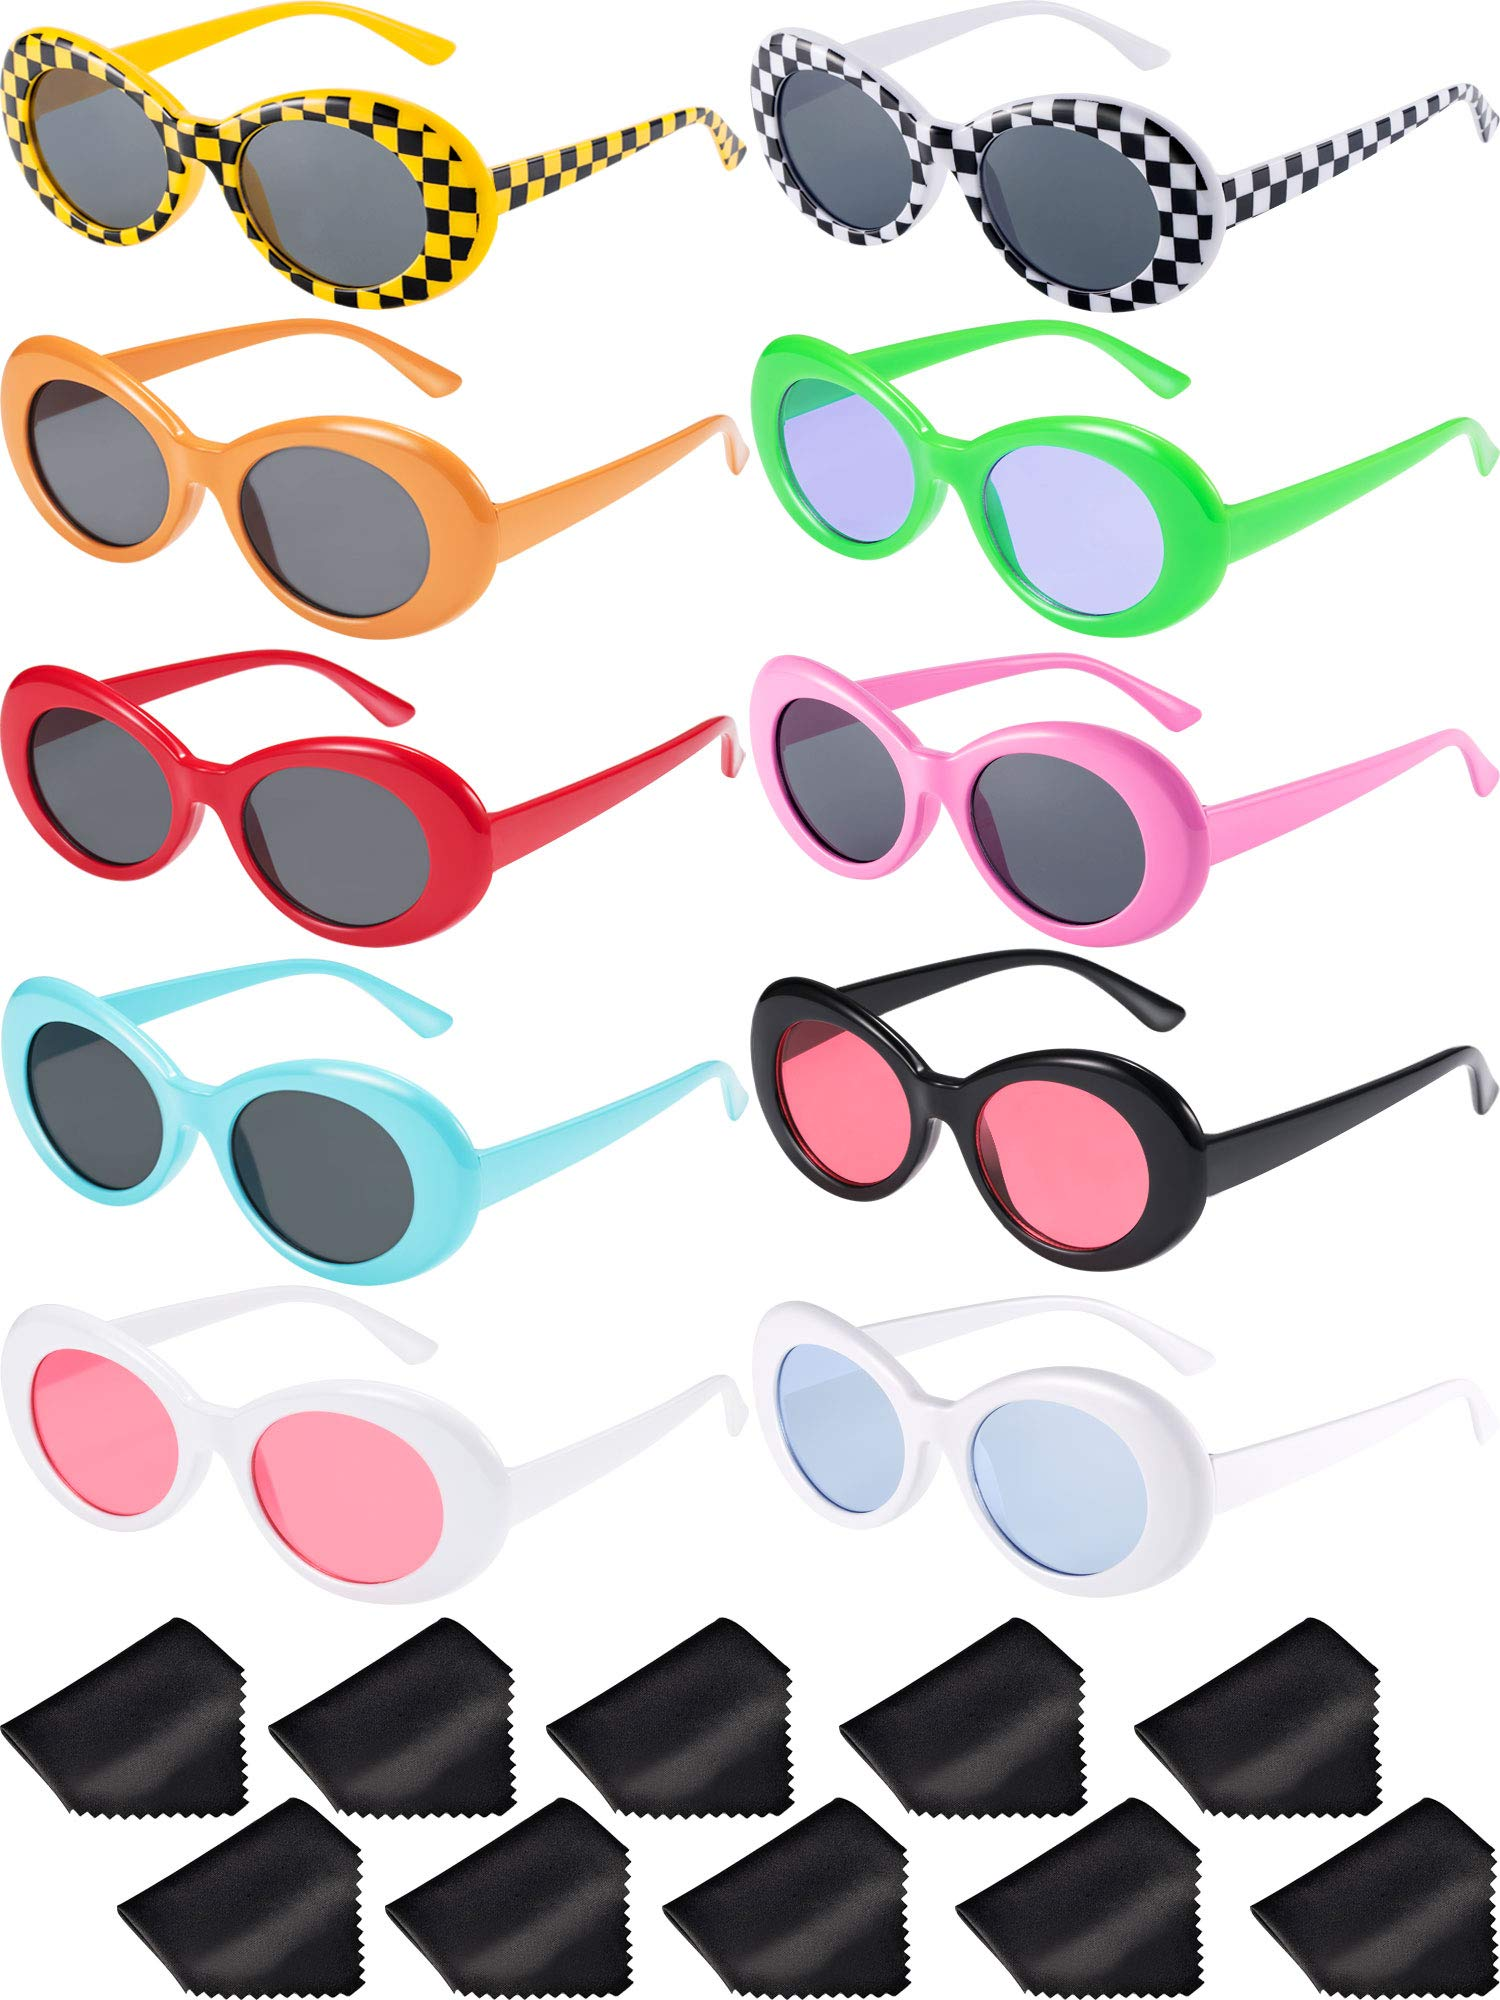 1100319a5da Blulu 10 Pairs Retro Clout Oval Goggles Mod Thick Frame Round Lens  Sunglasses 10 Colors Women Men Girl Boy Sunglasses with 10 Lens Cloth